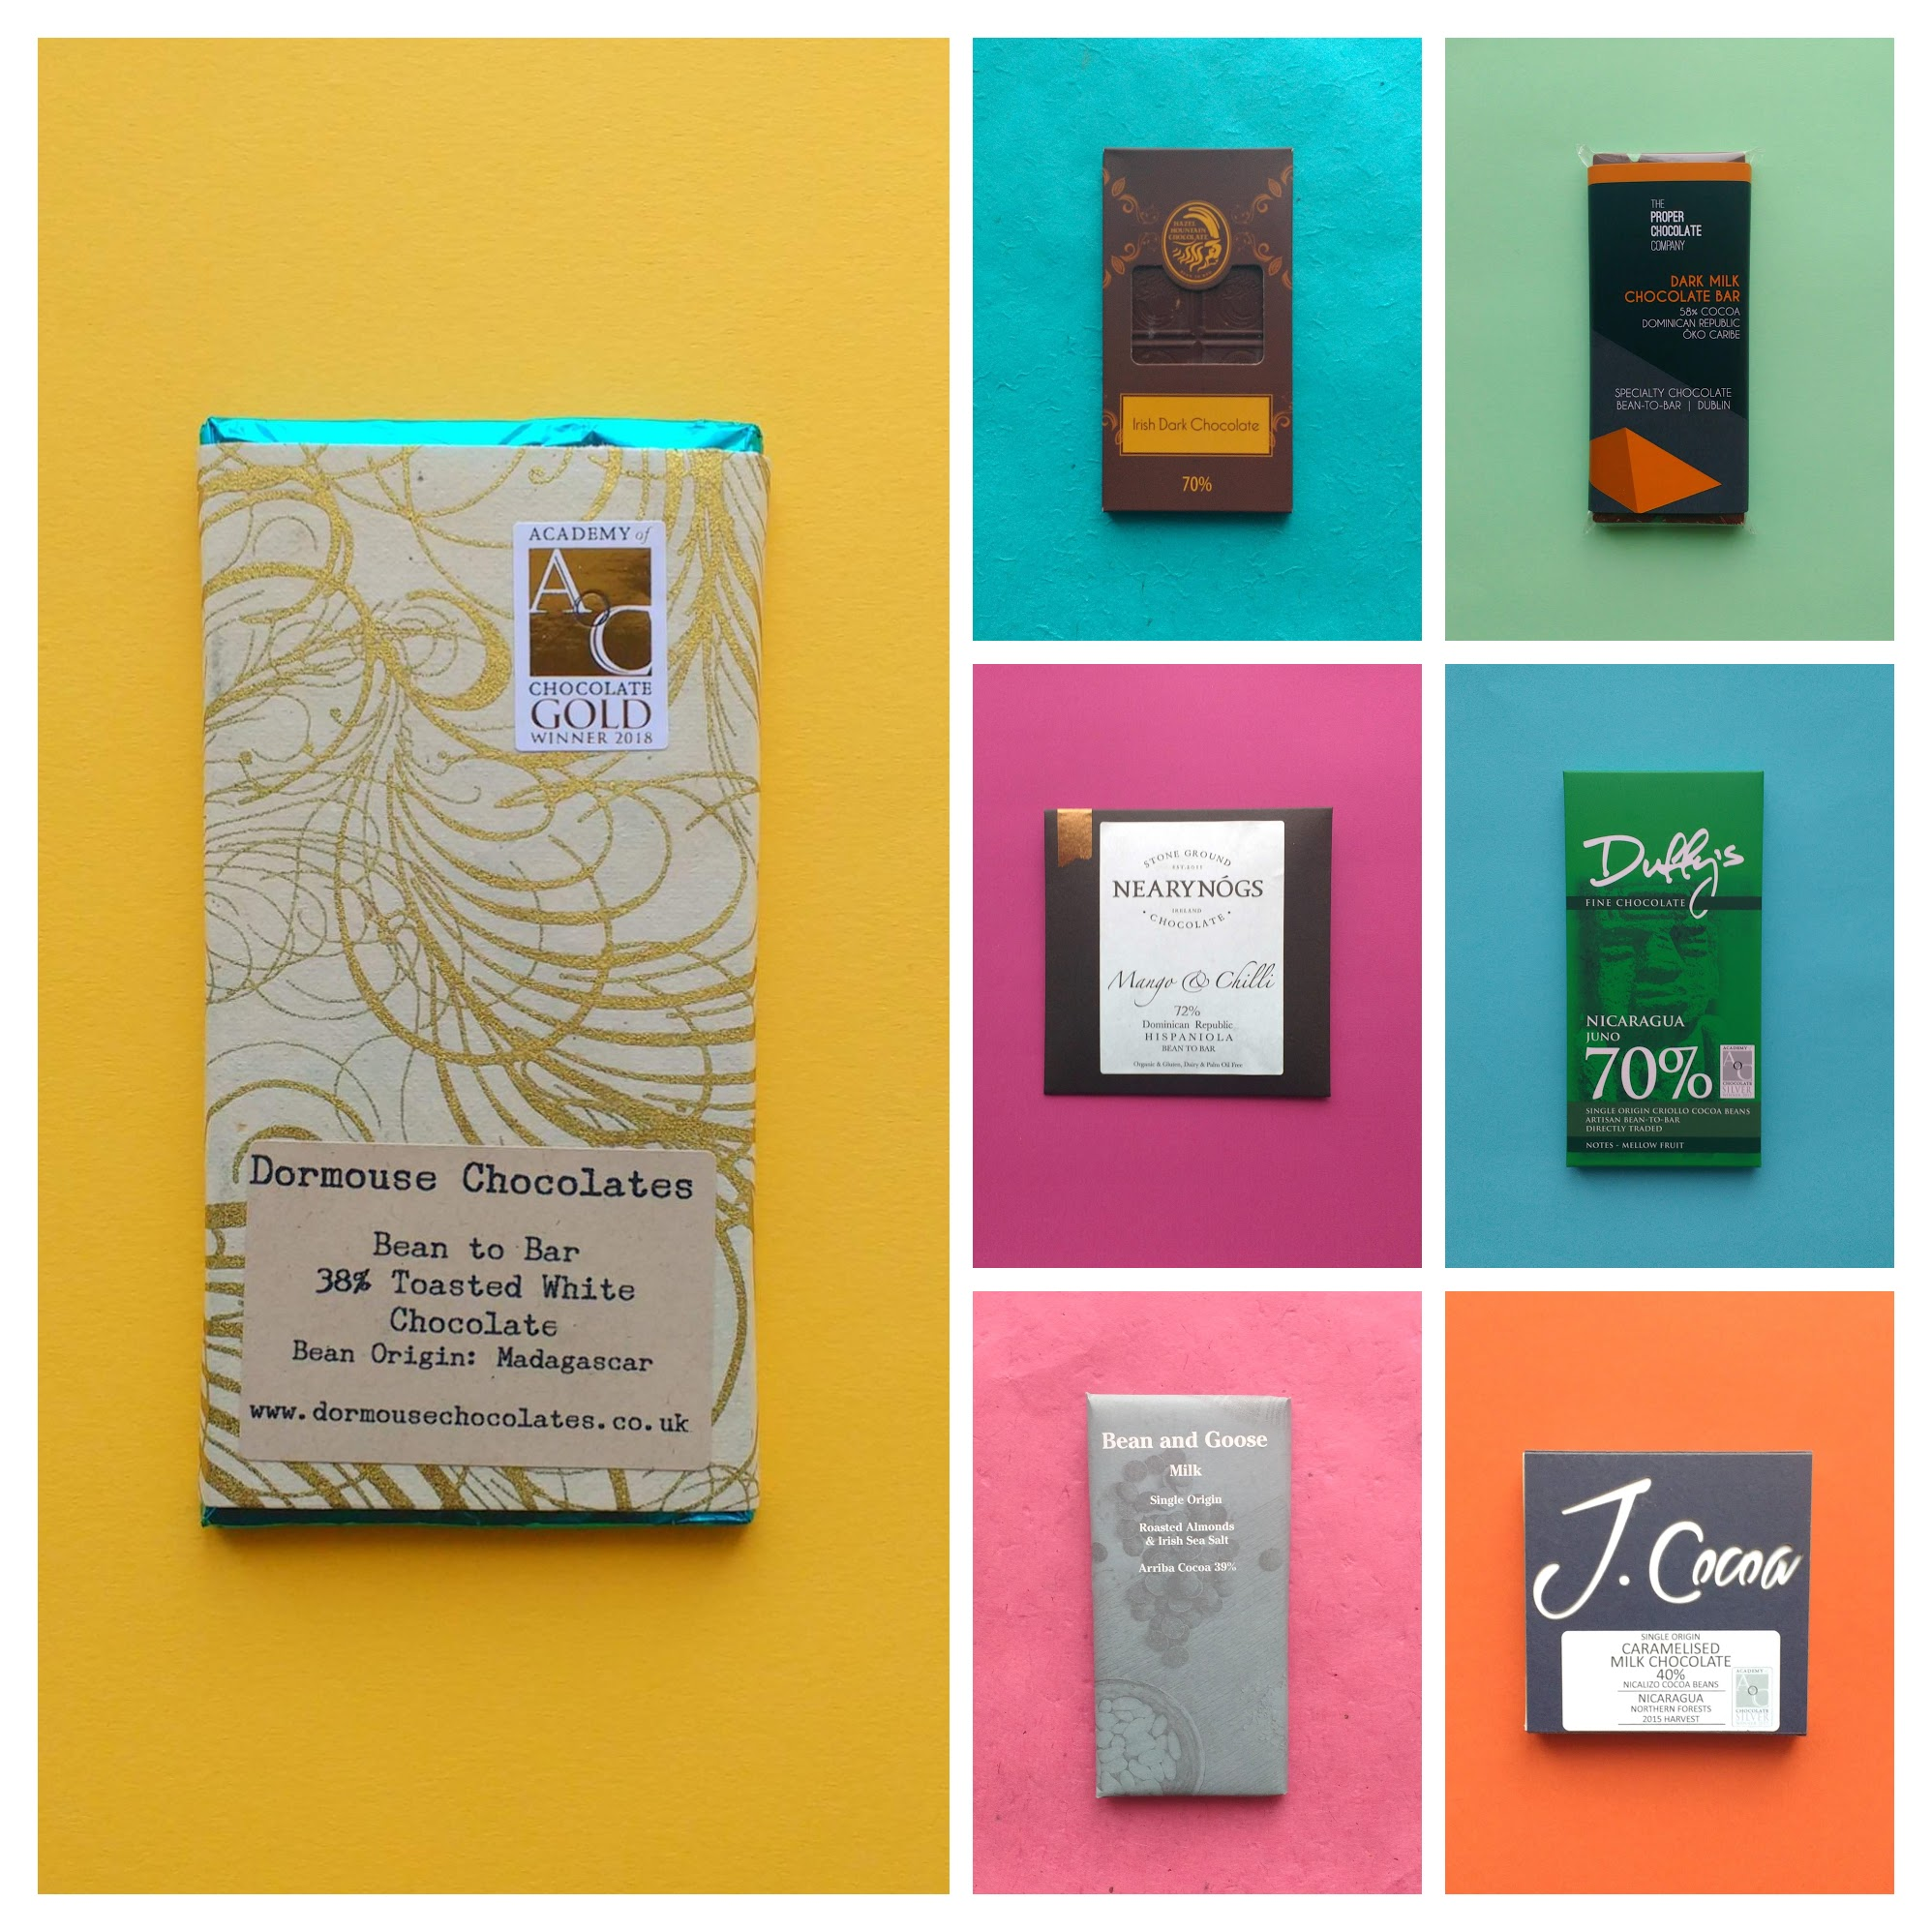 craft chocolate company, chocolate shop, bean to bar chocolate, dairy free chocolate vegan chocolate, gluten free chocolate, chocolate subscription box, chocolate gifts